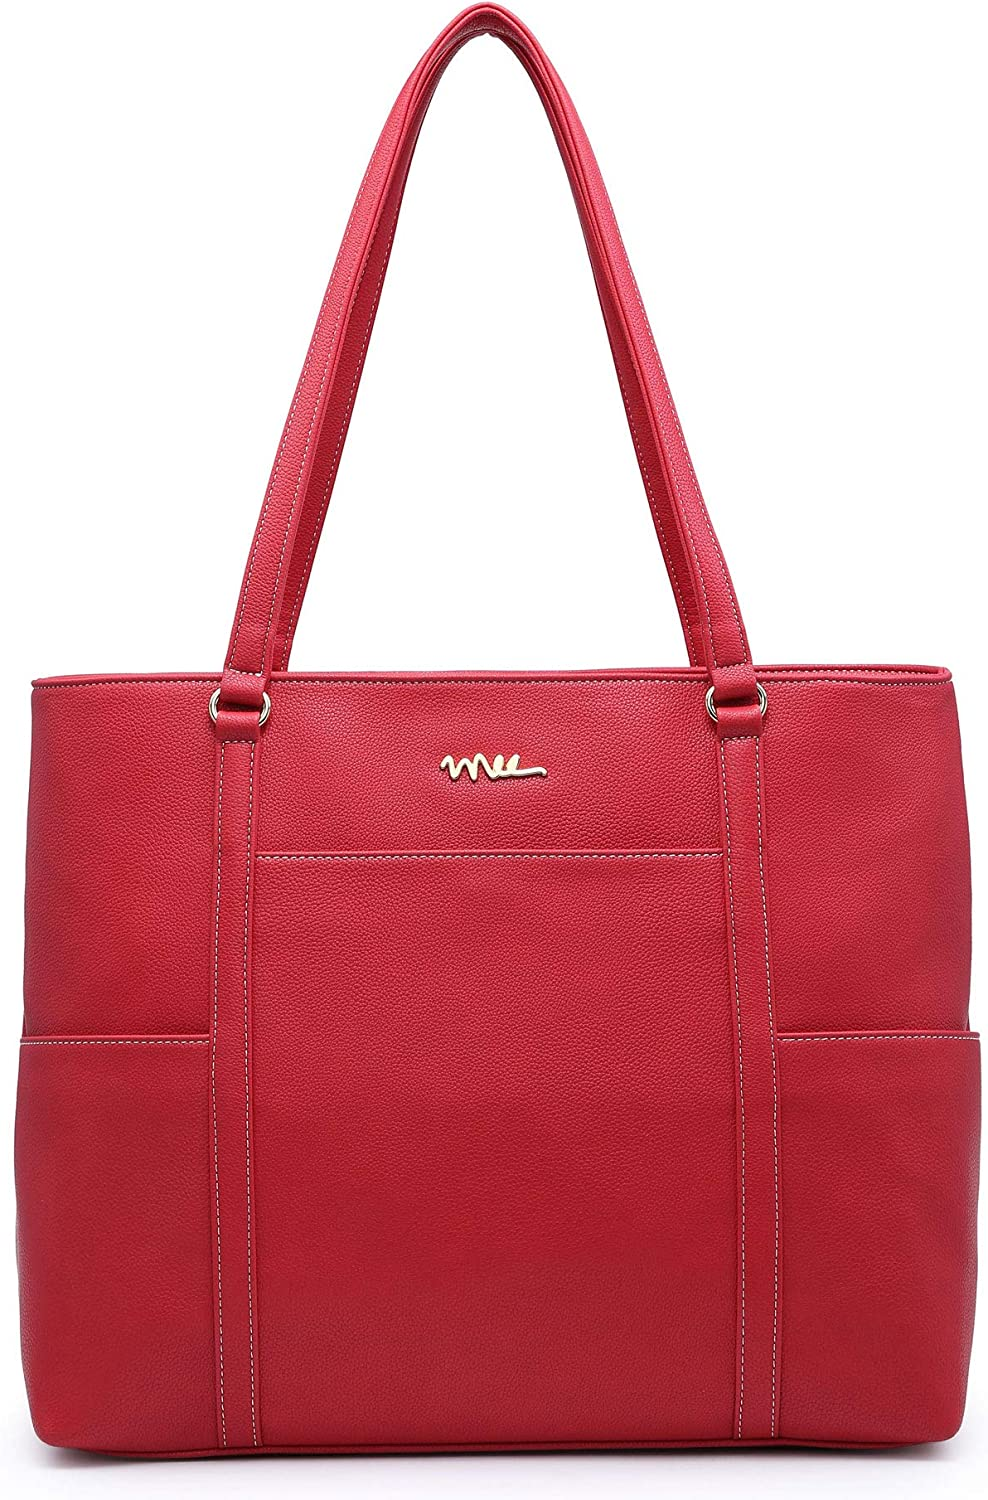 NNEE Classic Laptop Leather Tote Bag for 15 15.6 inch Notebook Computers Travel Carrying Bag with Smart Trolley Strap Design - Red